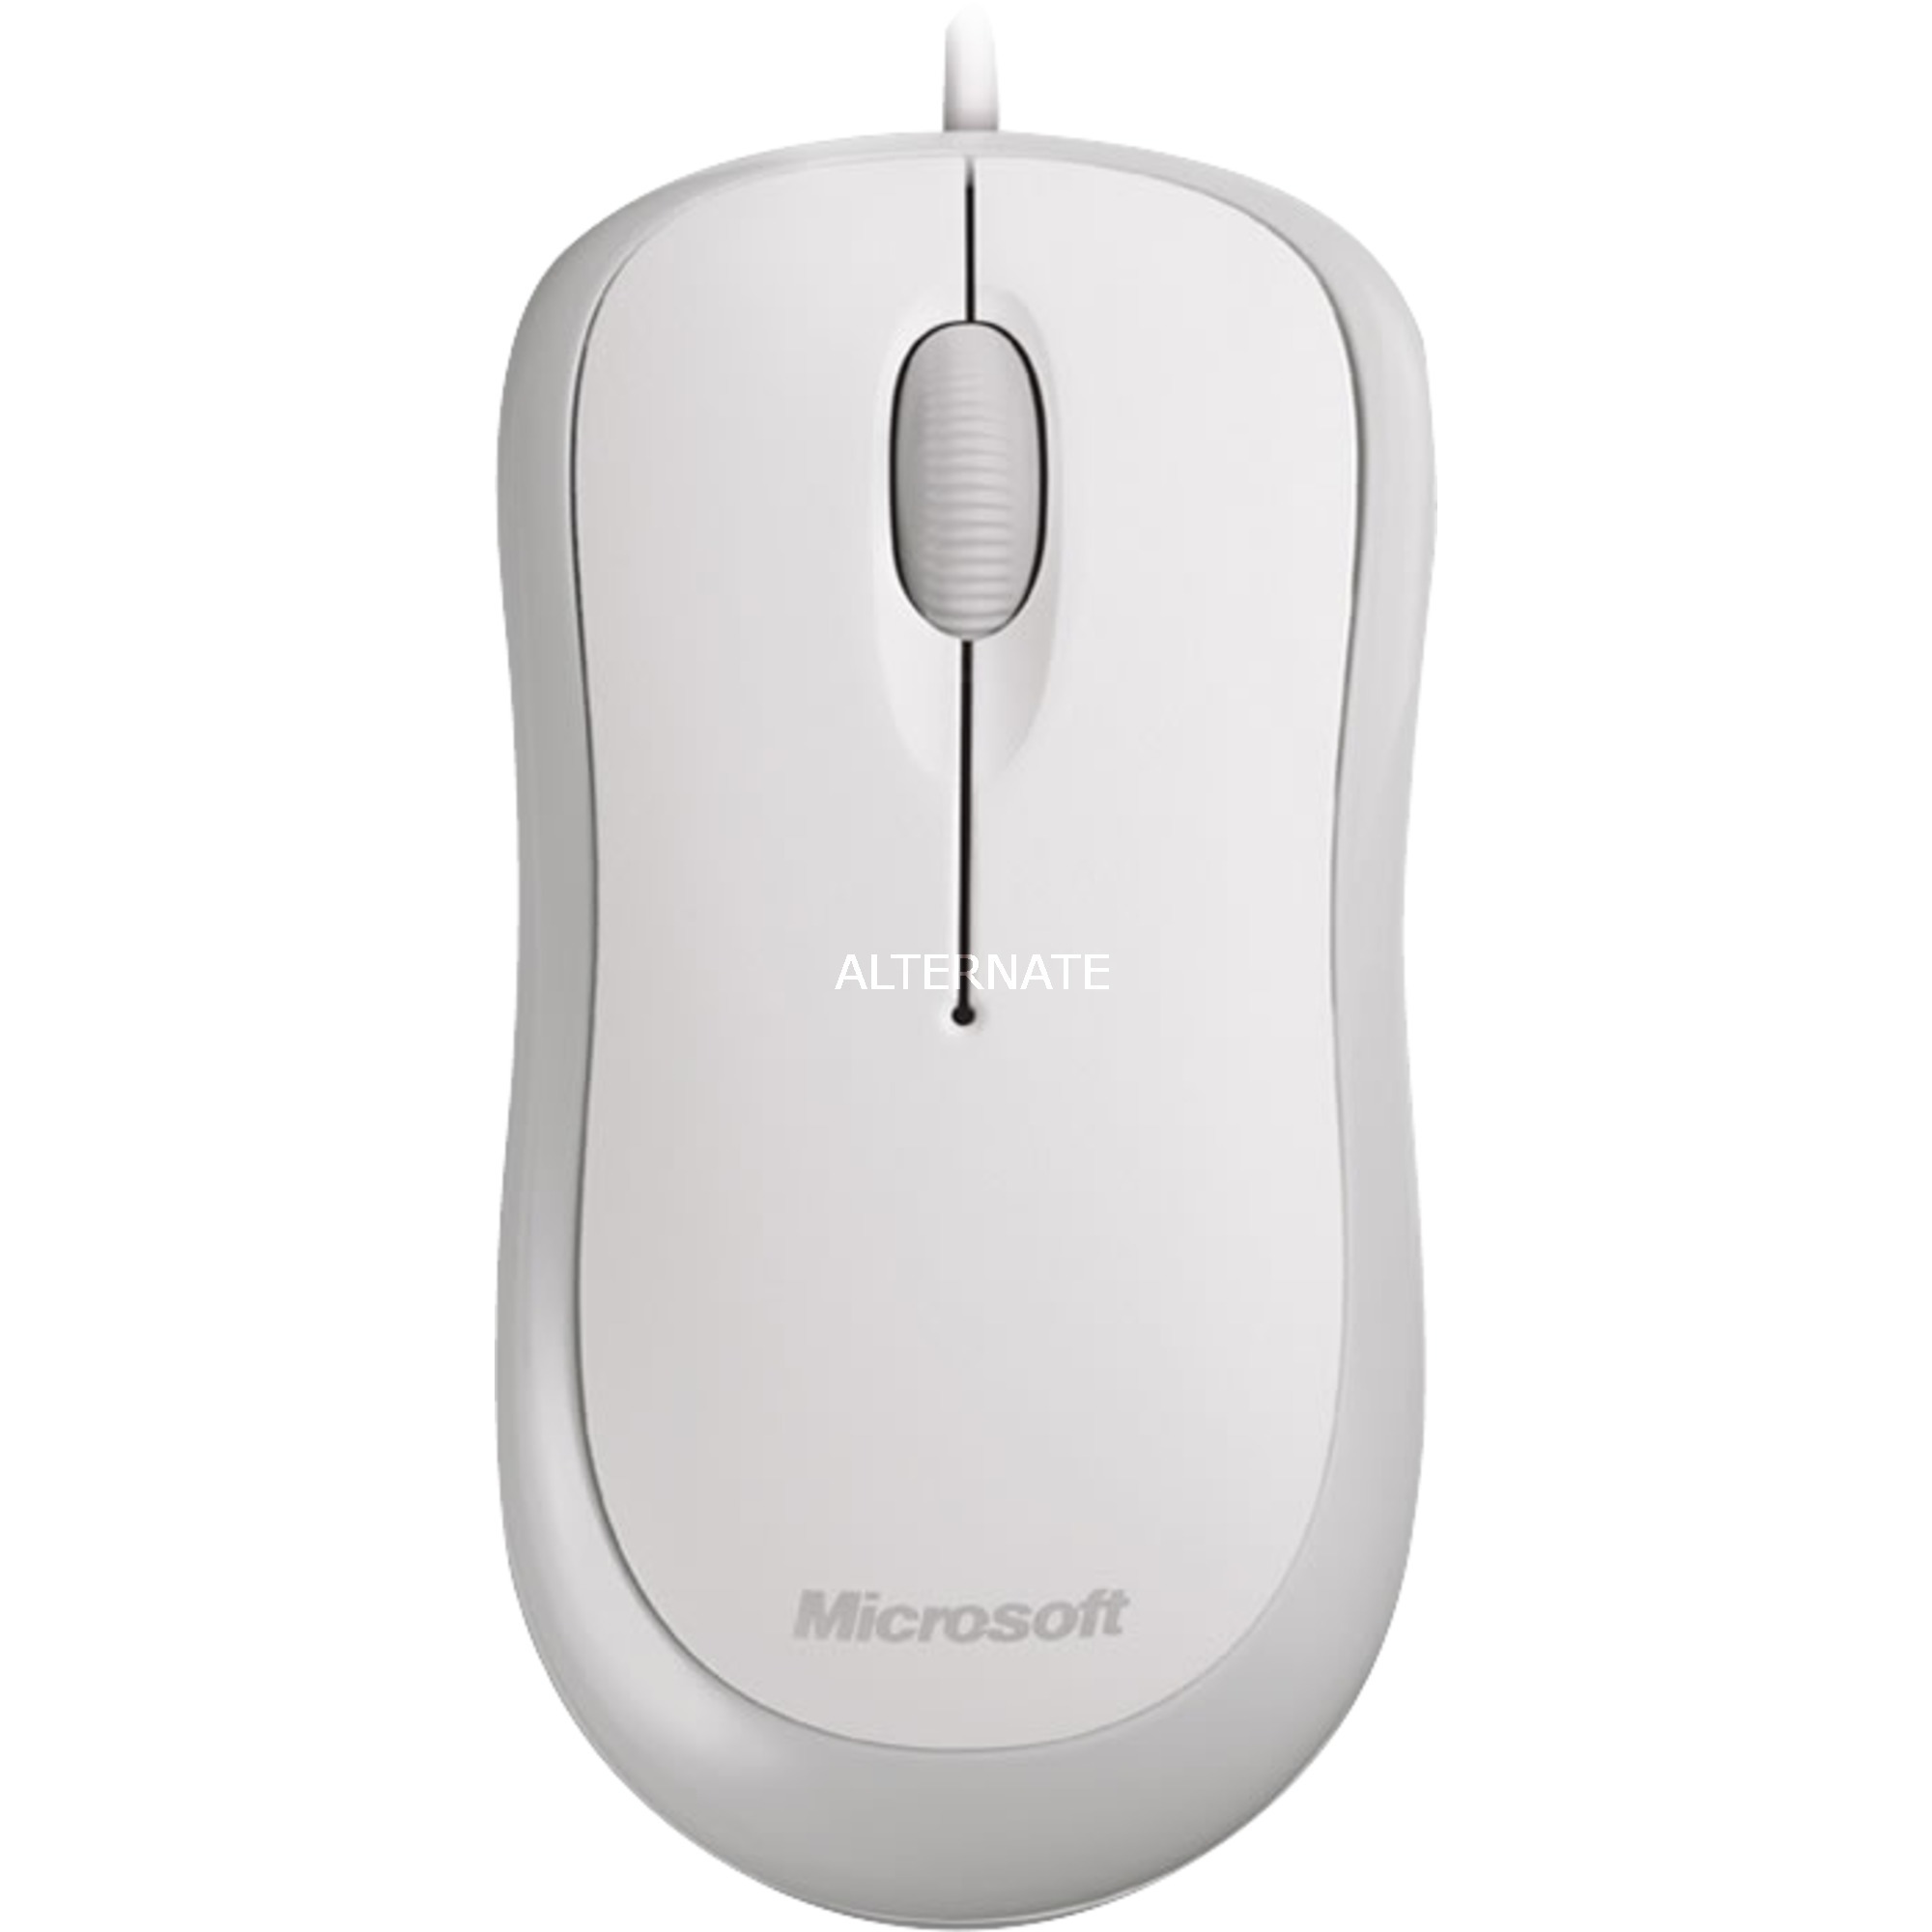 Basic Optical Mouse for Business USB Óptico 800DPI Ambidextro Blanco ratón